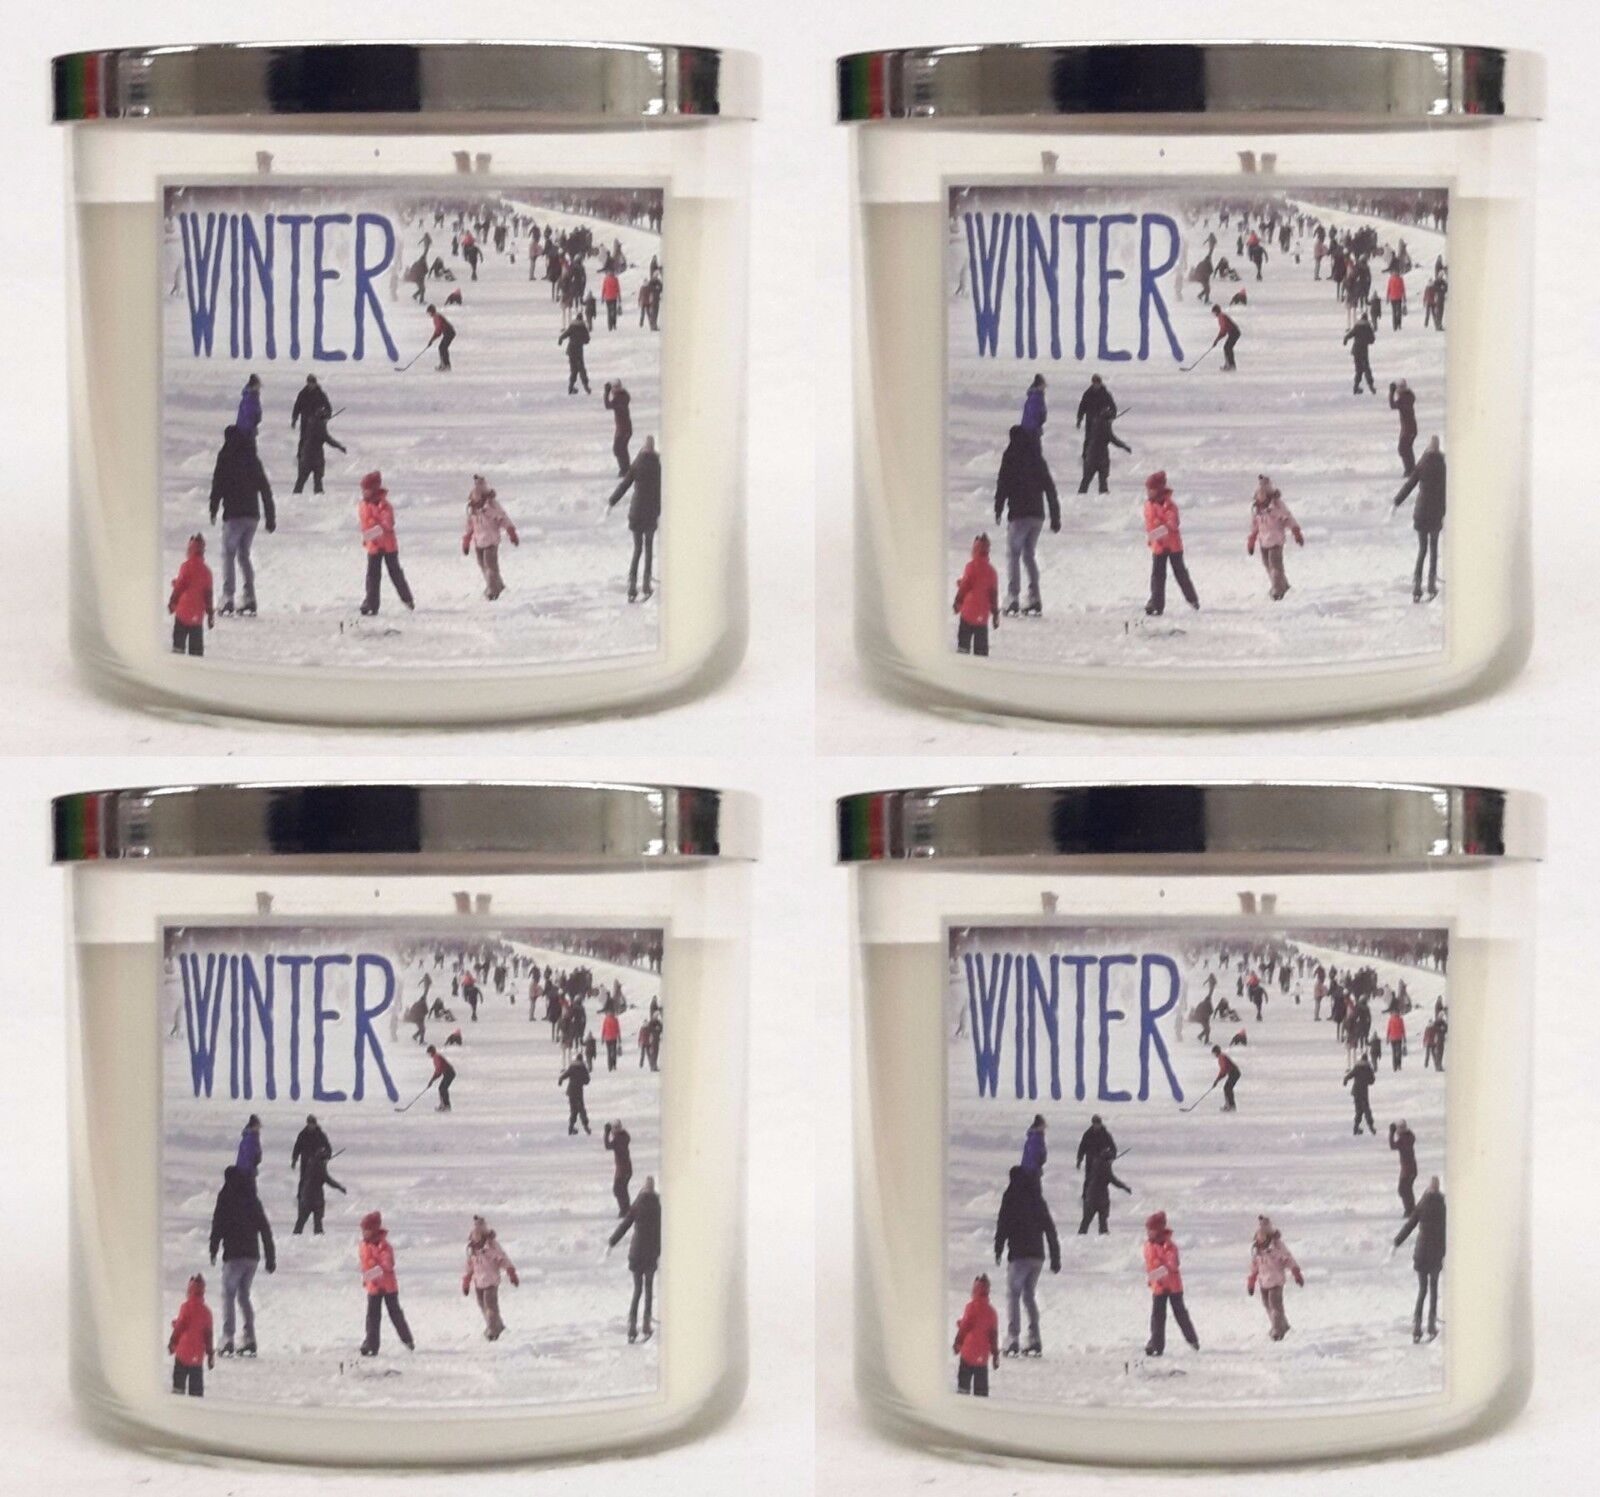 4 Bath & Body Works Winter 3-Wick Filled Candle 14.5